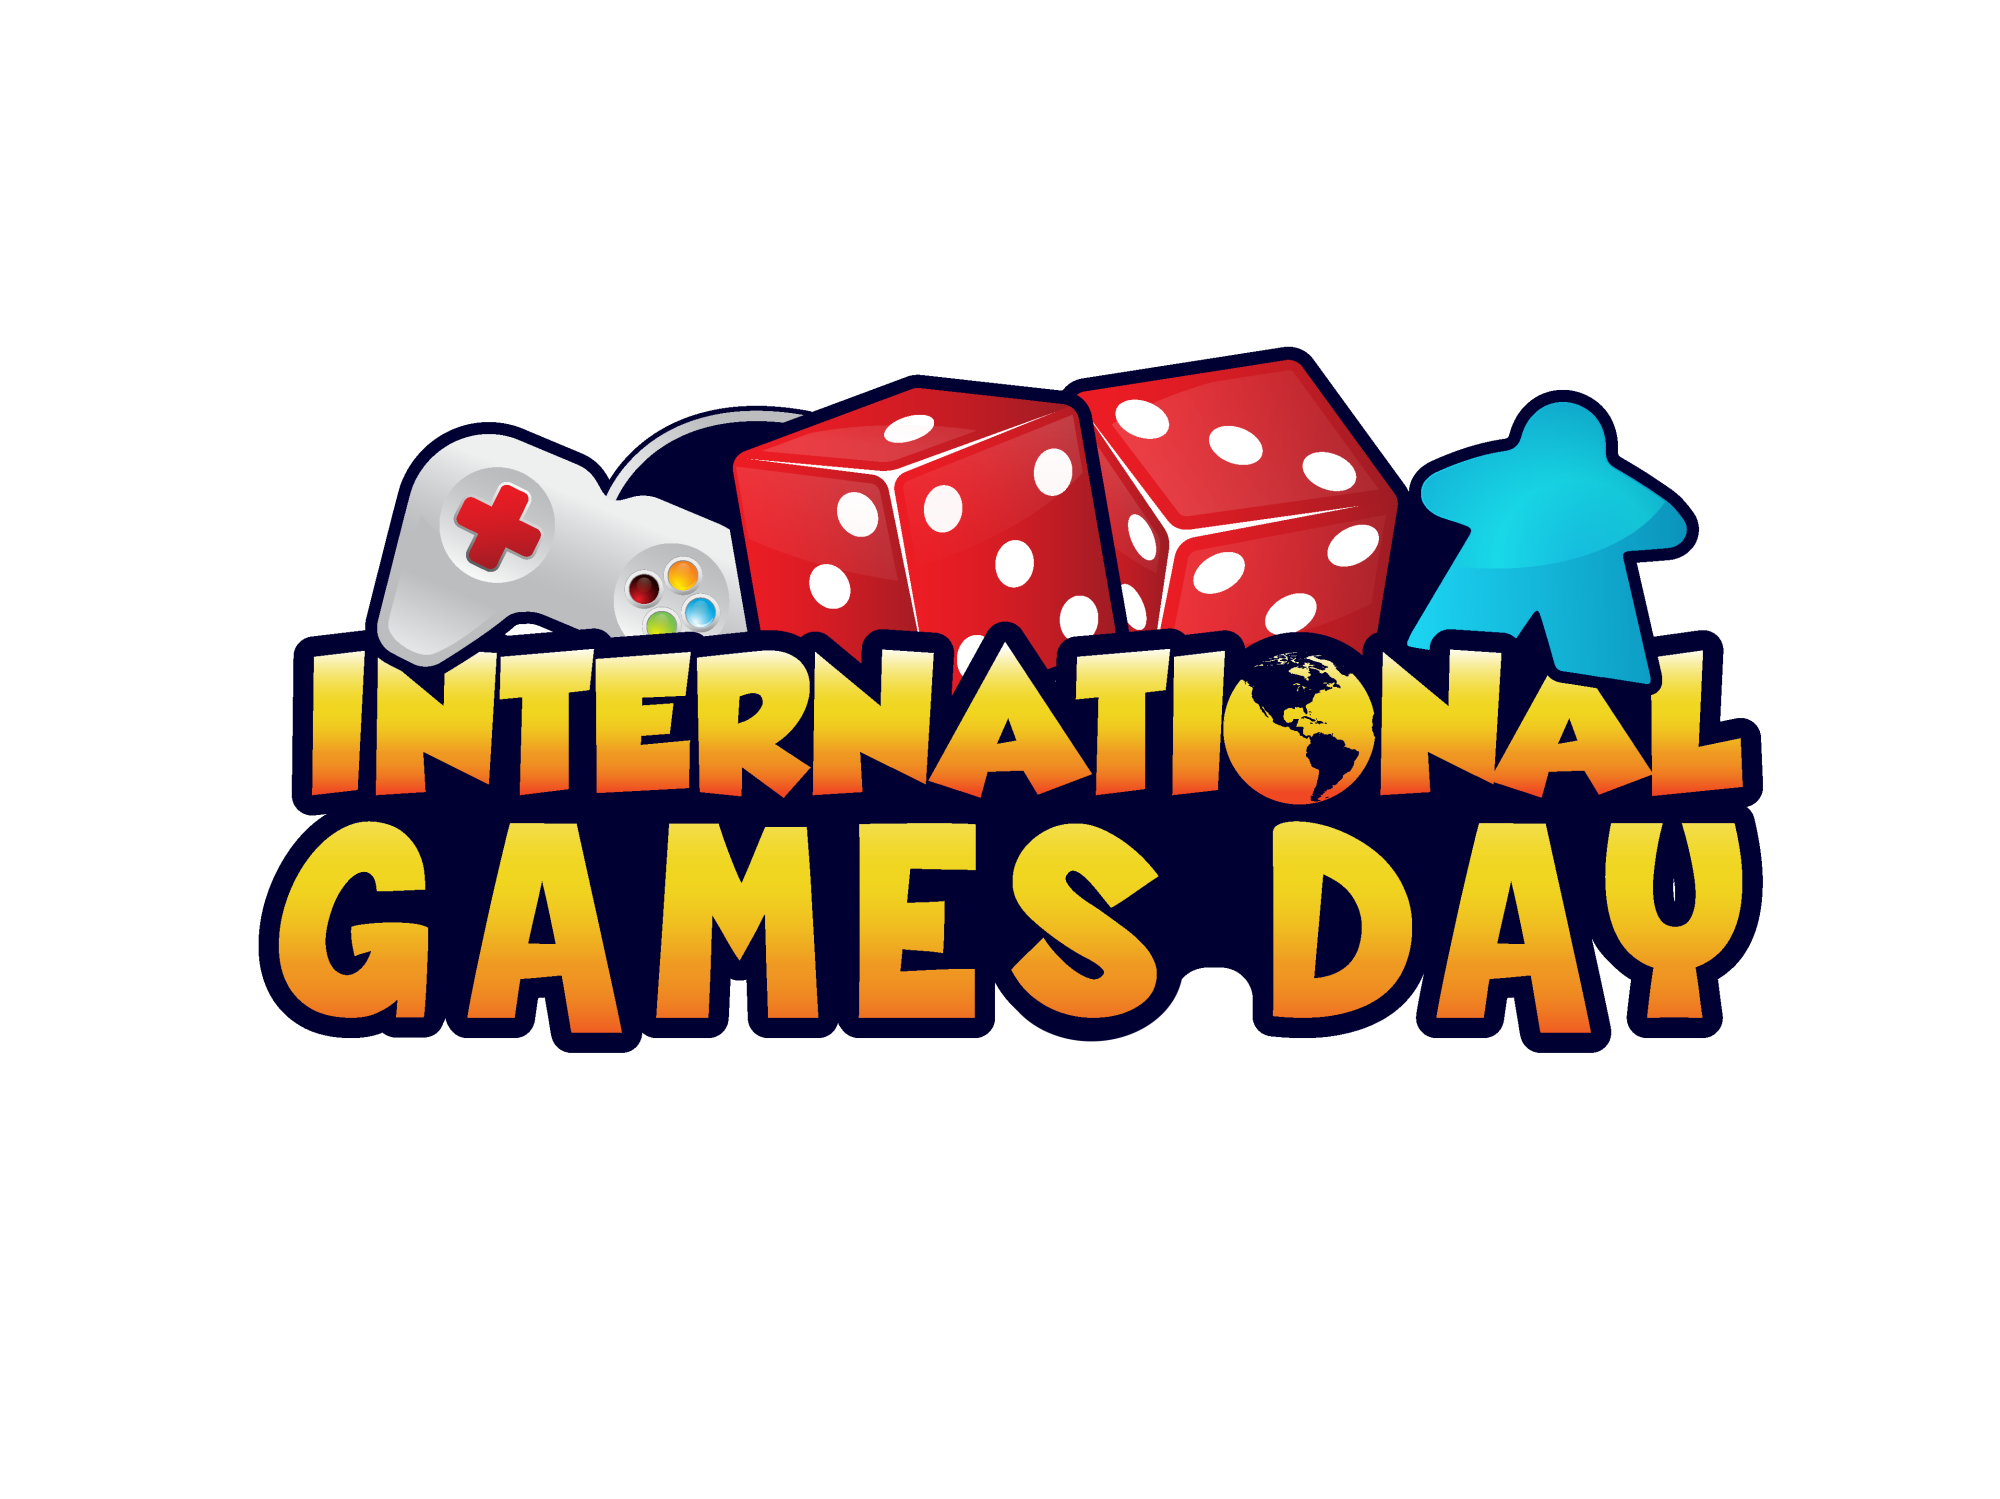 Game Day Logo with dice and game controller